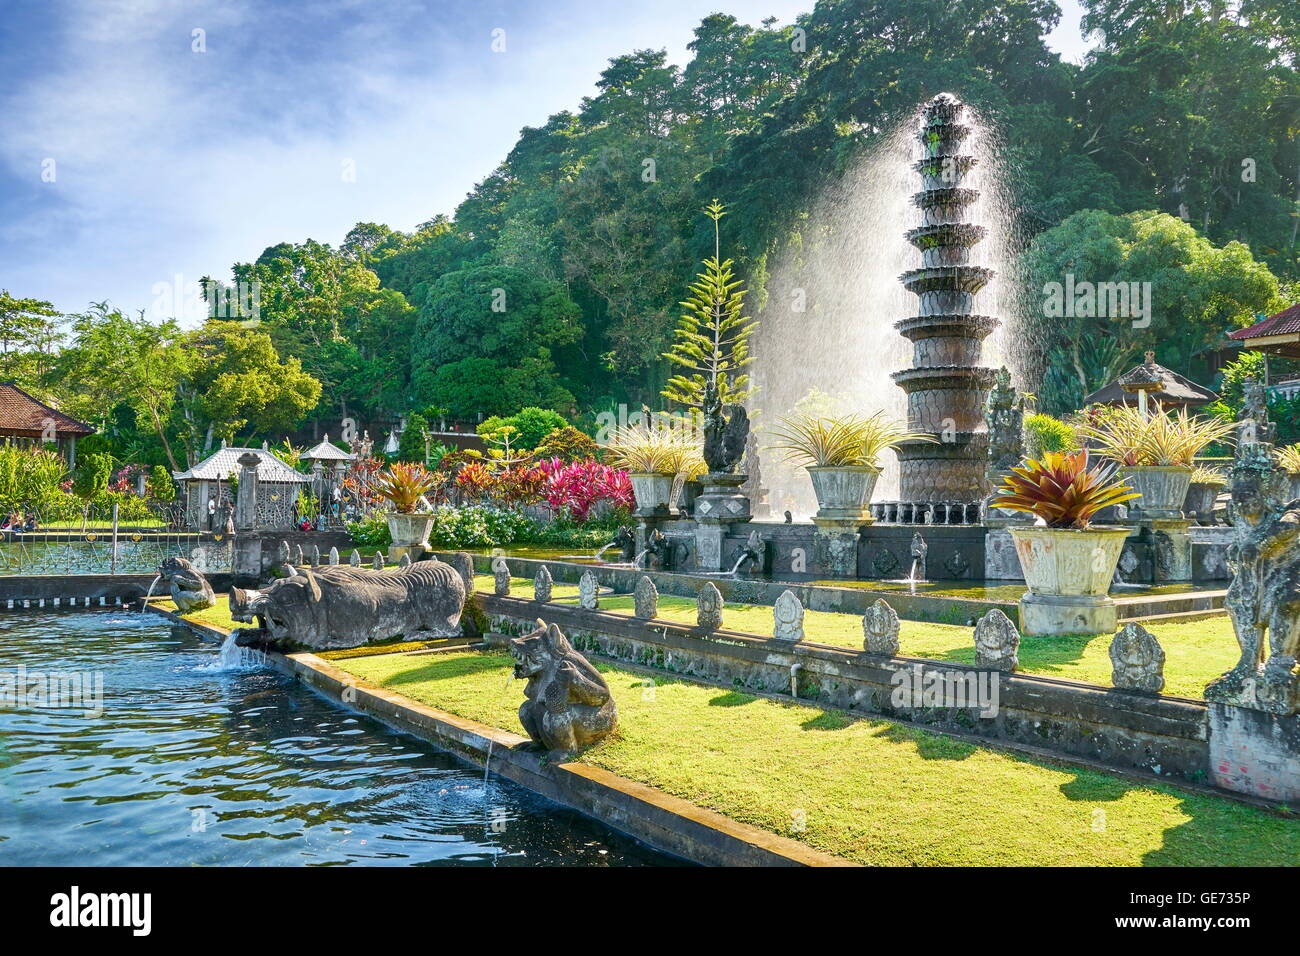 Bali, Indonesia -The Water Palace Tirta Gangga - Stock Image